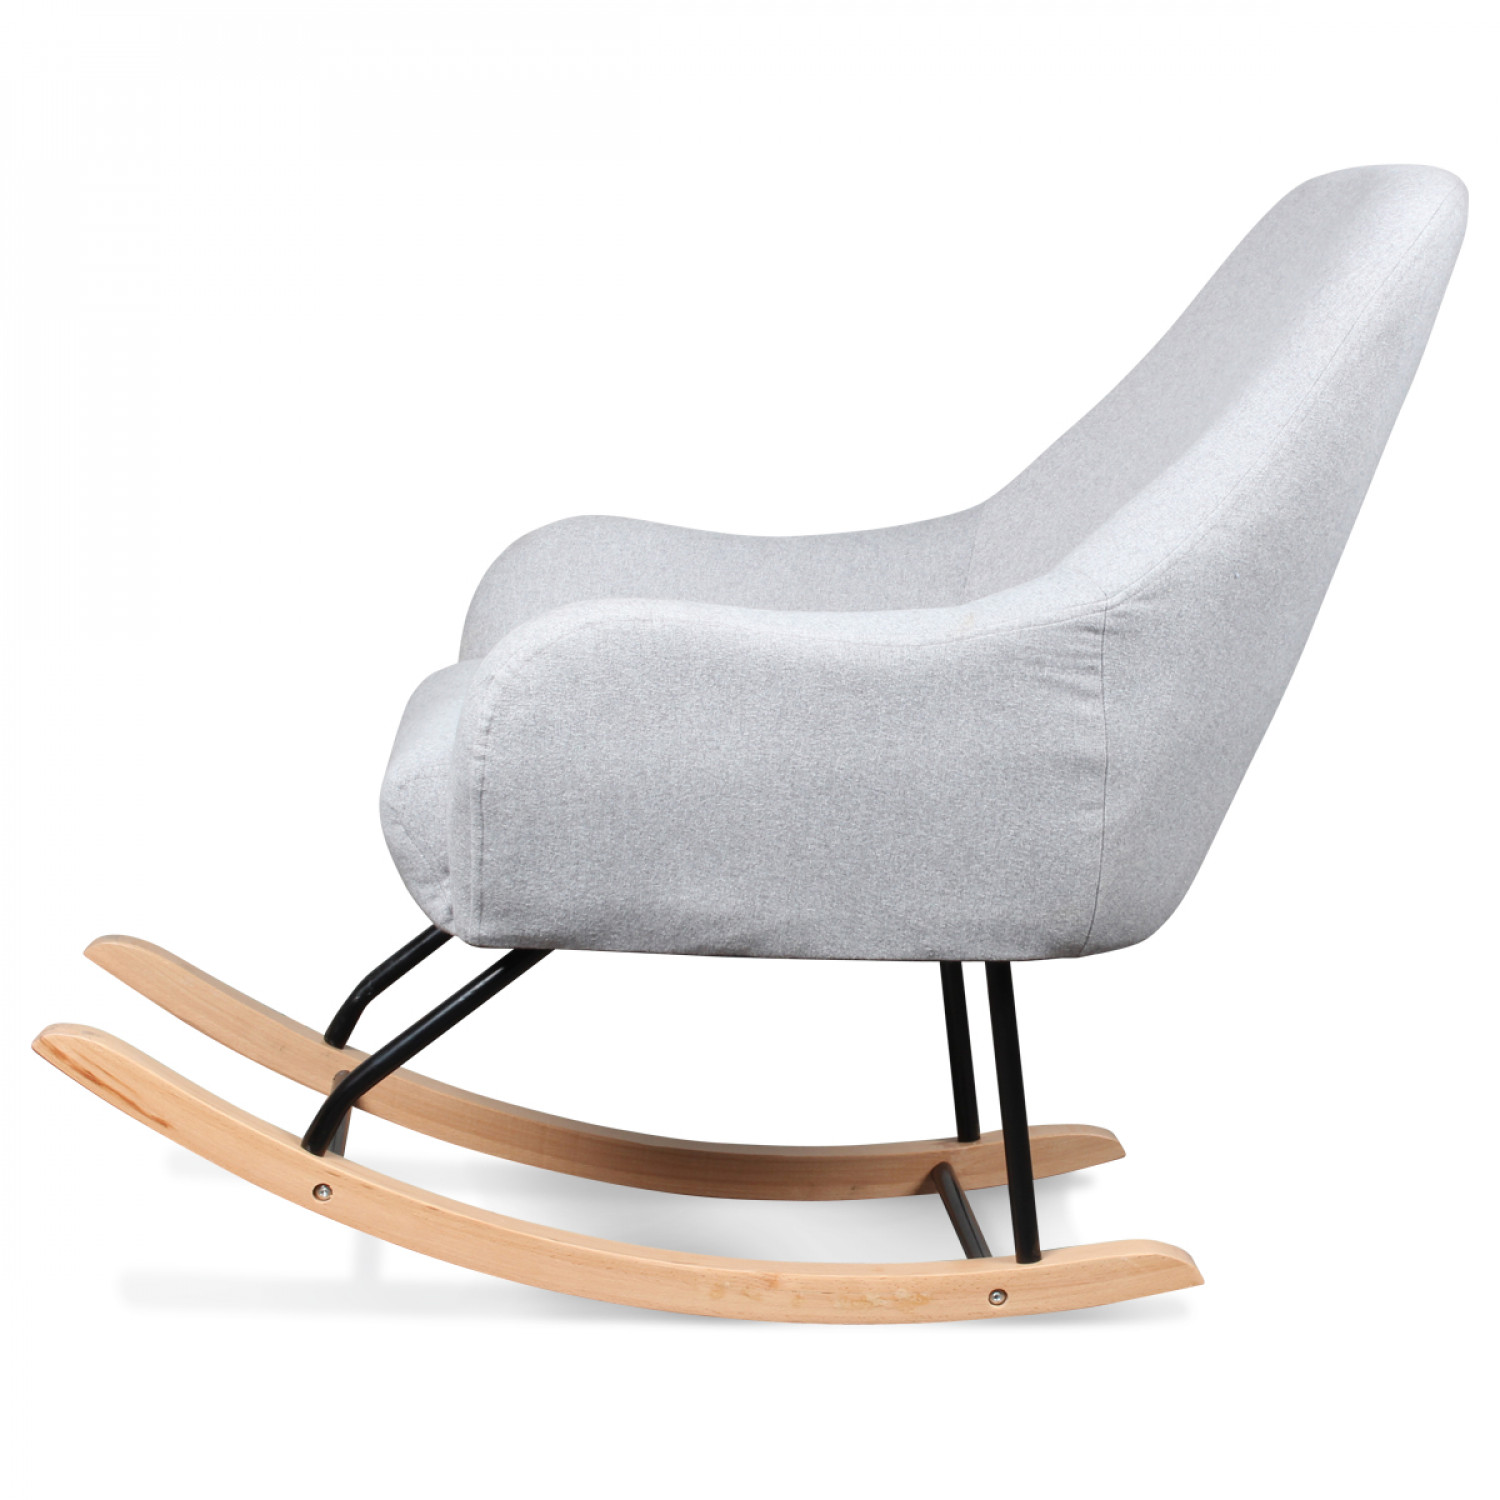 Fauteuil Rocking Chair Design Scandinave Bois Et Métal SLEDGE - Fauteuil rocking chair design